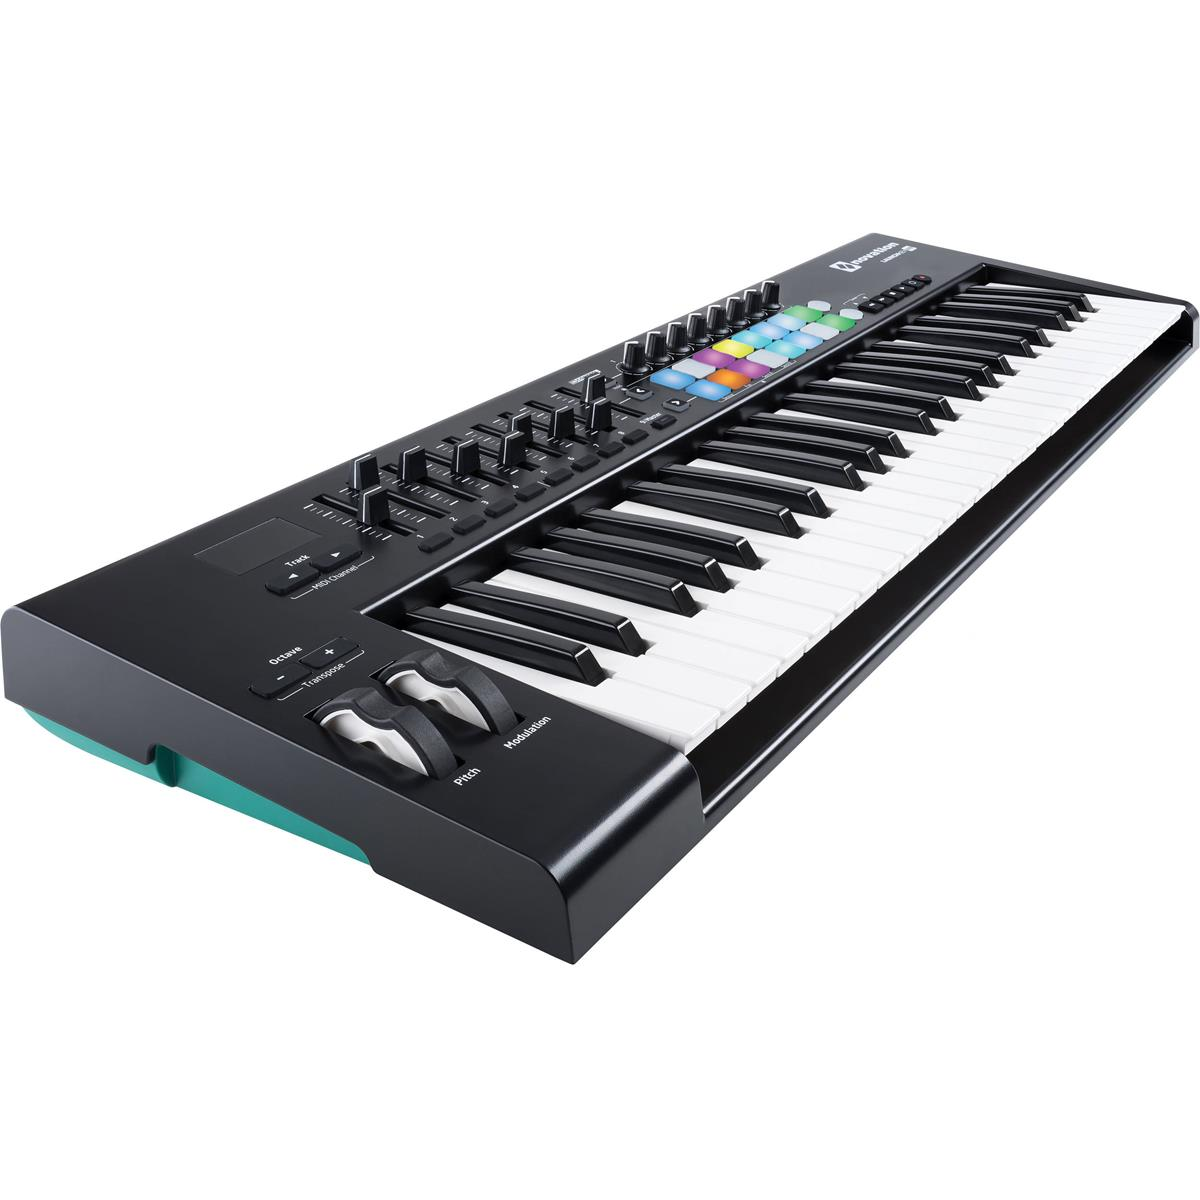 NOVATION-LAUNCHKEY-49-MK2-sku-17481